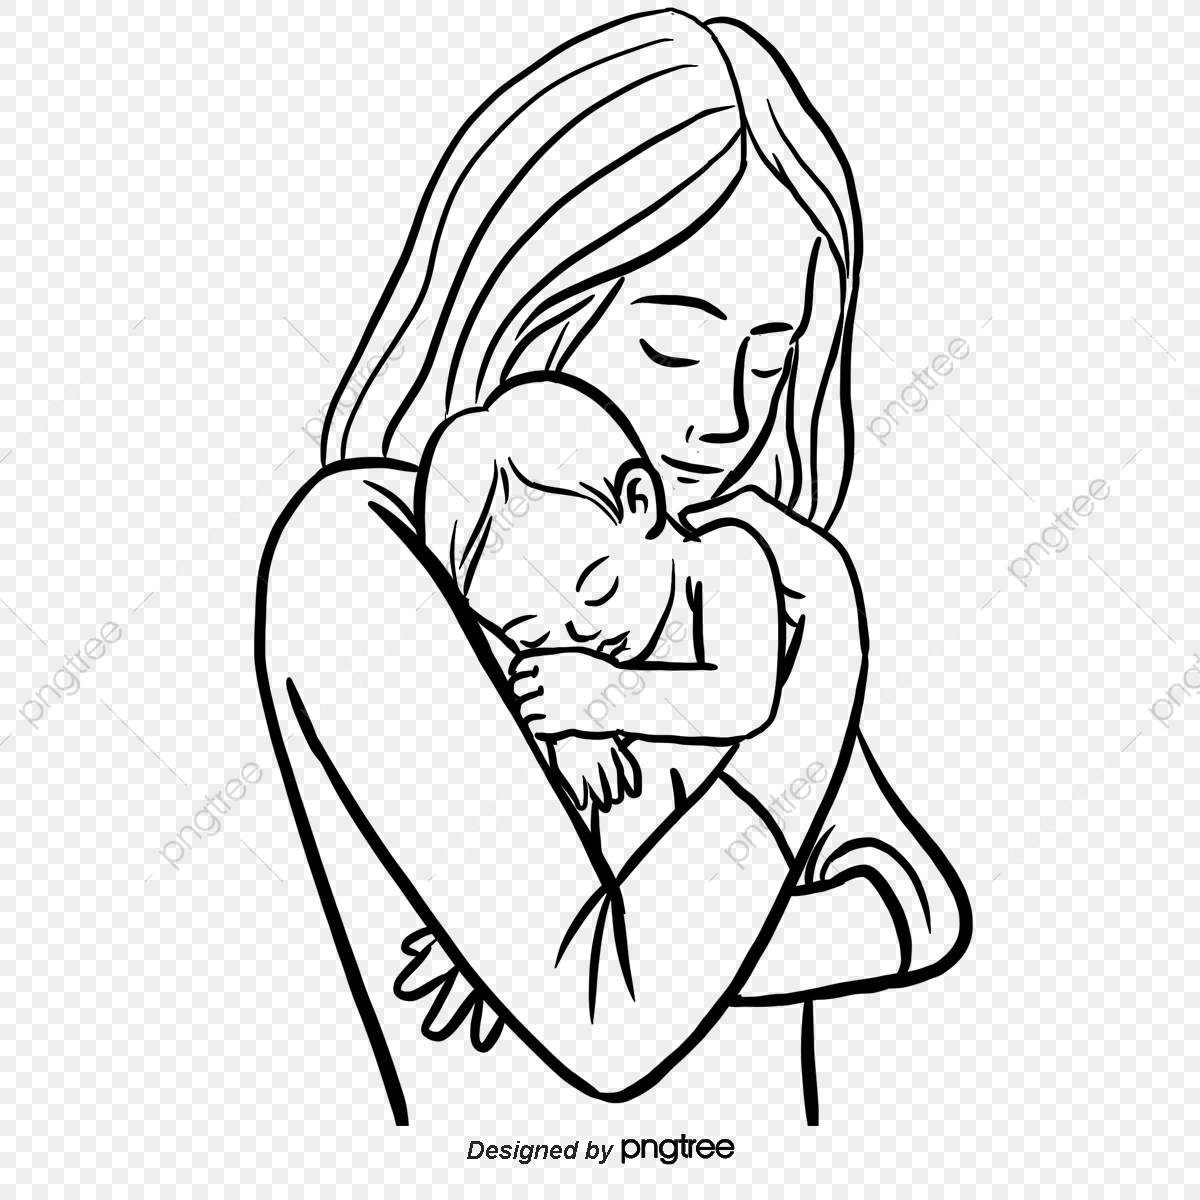 Hand Drawn Png Vector Psd And Clipart With Transparent Background For Free Download Pngtree 6,550 transparent png illustrations and cipart matching hand drawing. https pngtree com freepng hand drawn illustrations of mothers and babies on mothers day 3850121 html